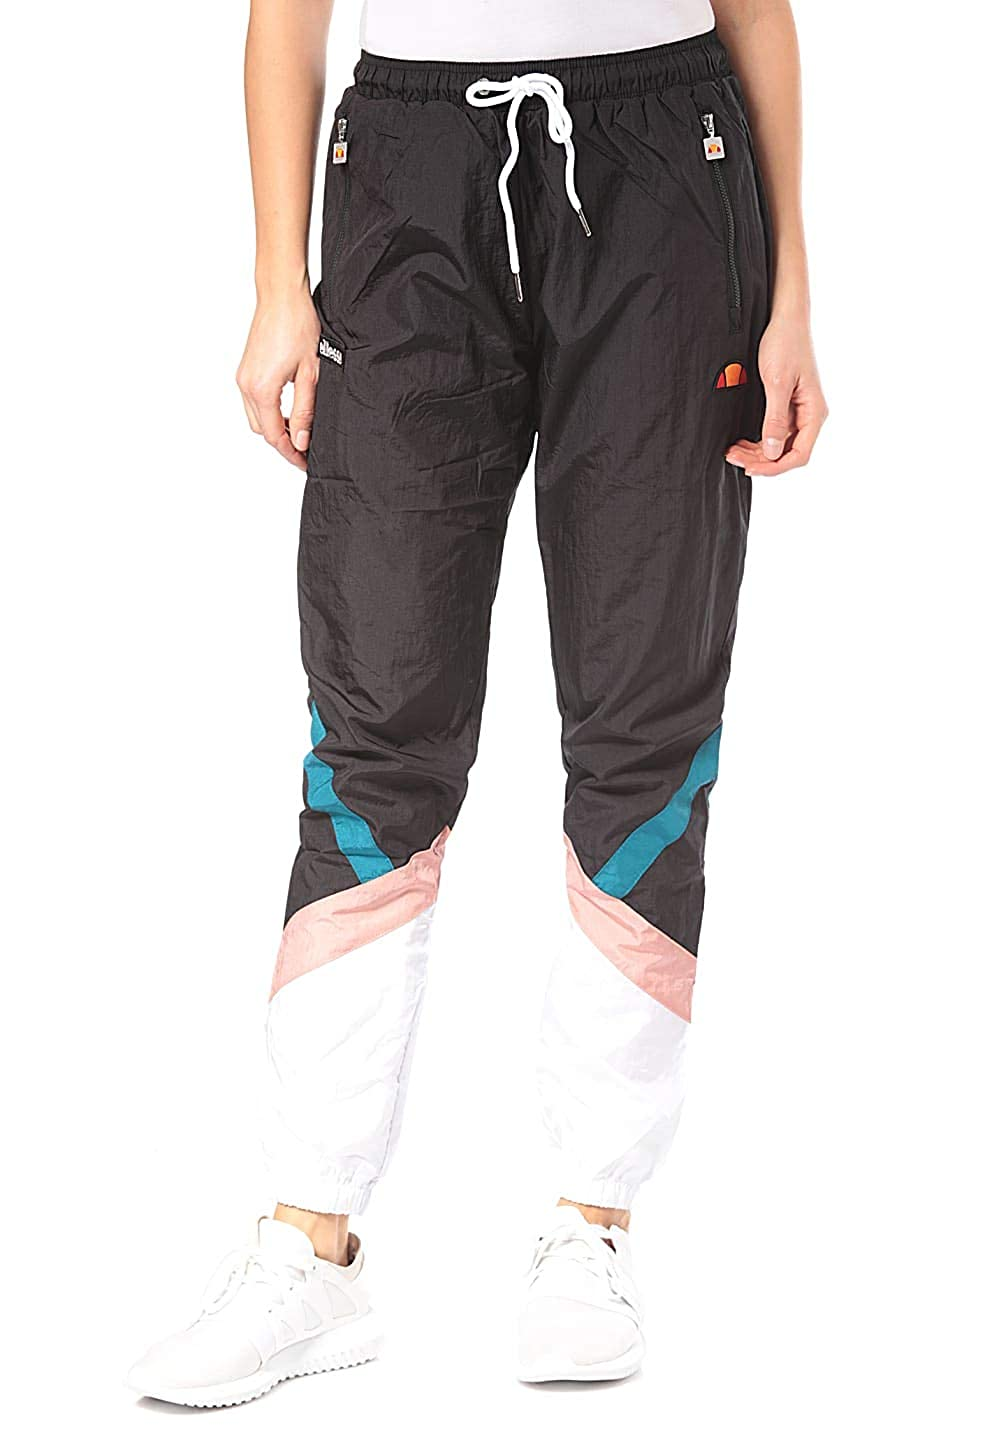 d979921d ellesse Women Sweatpants Marceria, Color:Anthracite, Size:8 (XS) at ...